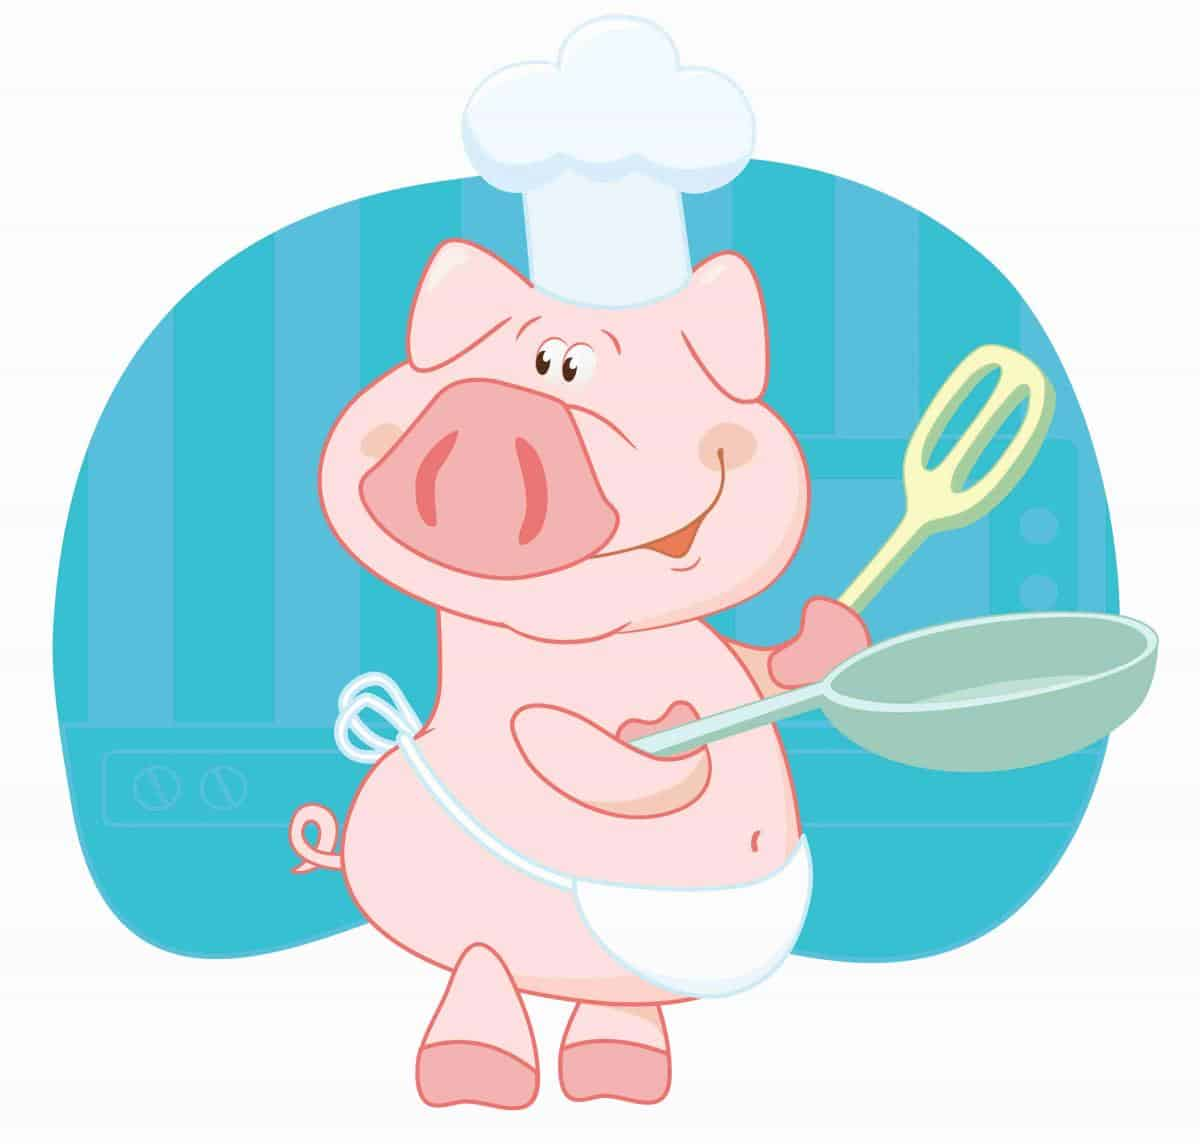 Going Whole Hog with Food Safety - IFIC Foundation